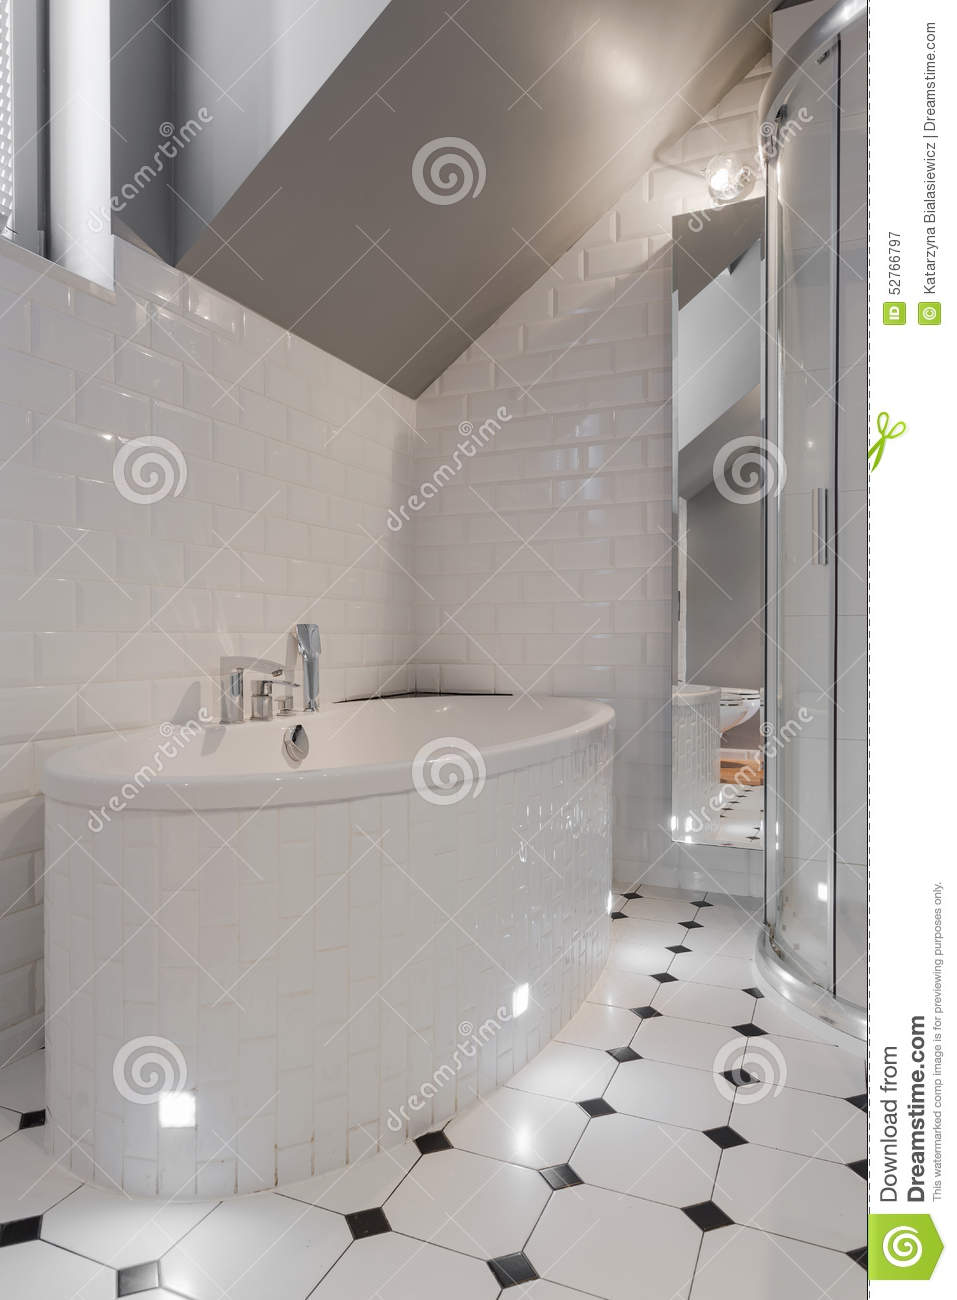 Porcelain Bathtub In White Washroom Stock Image - Image of restroom ...